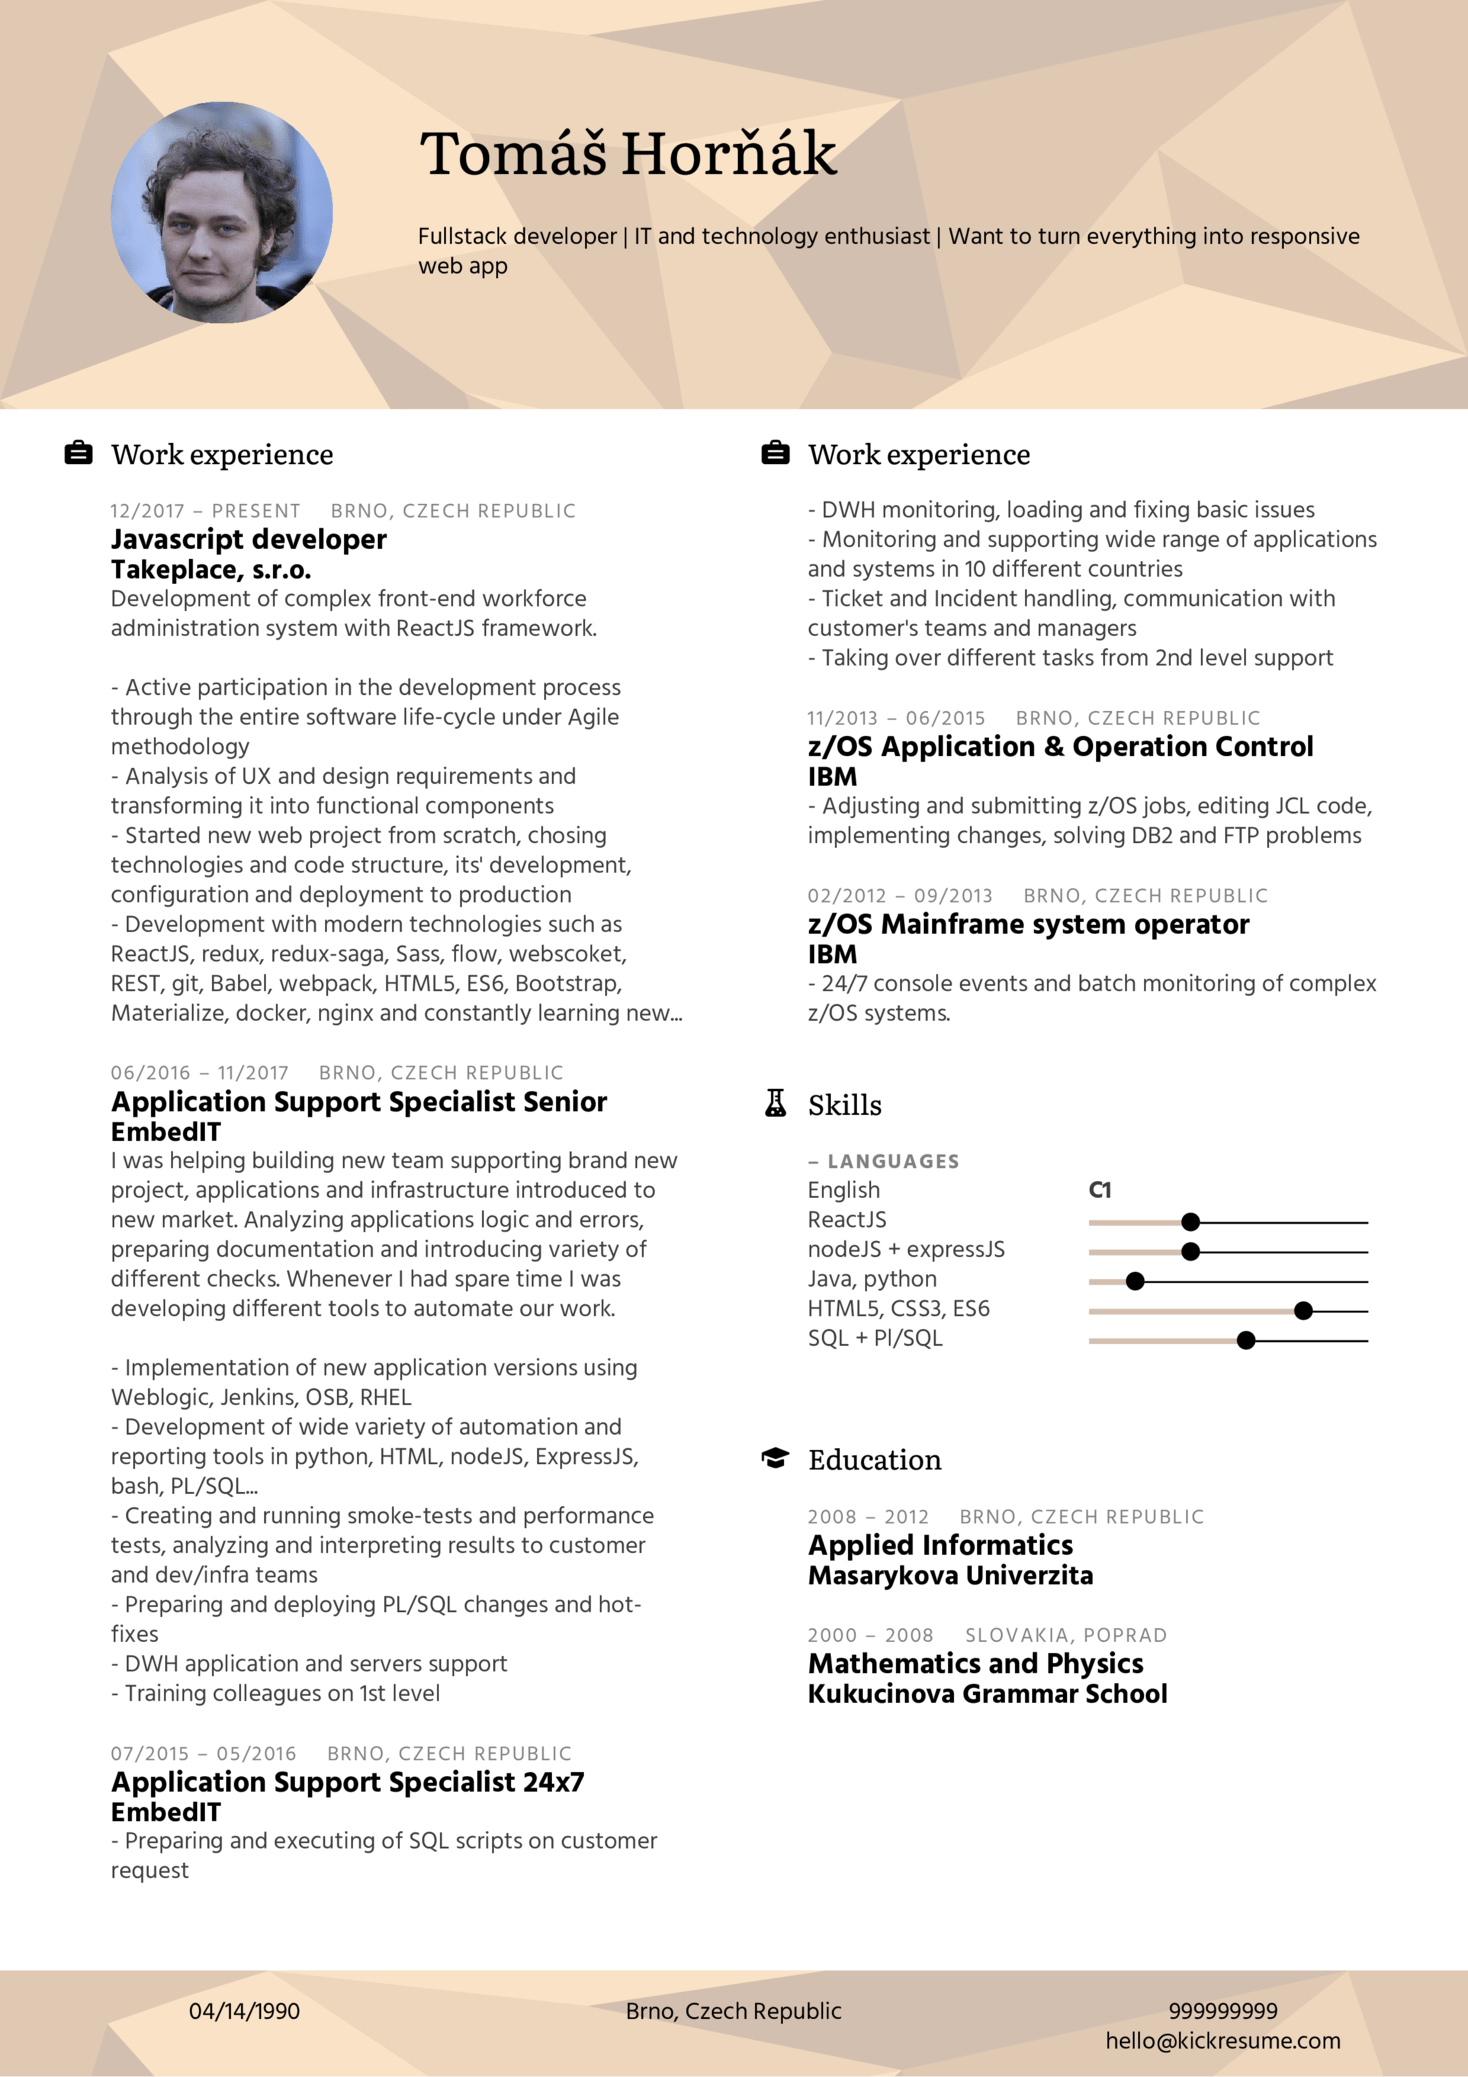 Resume Examples by Real People: Takeplace Java Script web developer ...